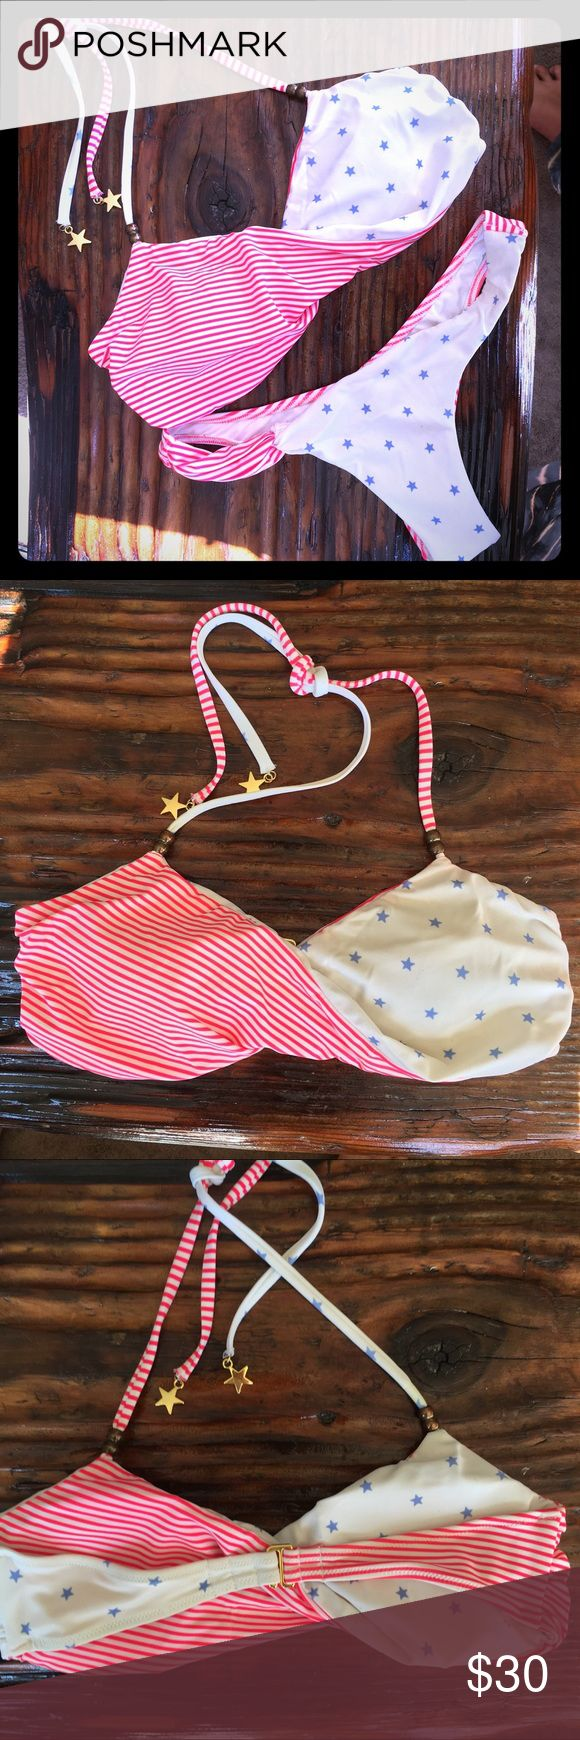 Victoria's Secret Bikini VS take on a Fourth of July American Flag bikini! Cute twist top wth removable padding. Adjustable clasp at the back and tie at neck with star charms. Hot pink stripe and light blue stars. Itsy bottoms with ruching. Small top and XS bottoms. Offers welcome! Victoria's Secret Swim Bikinis